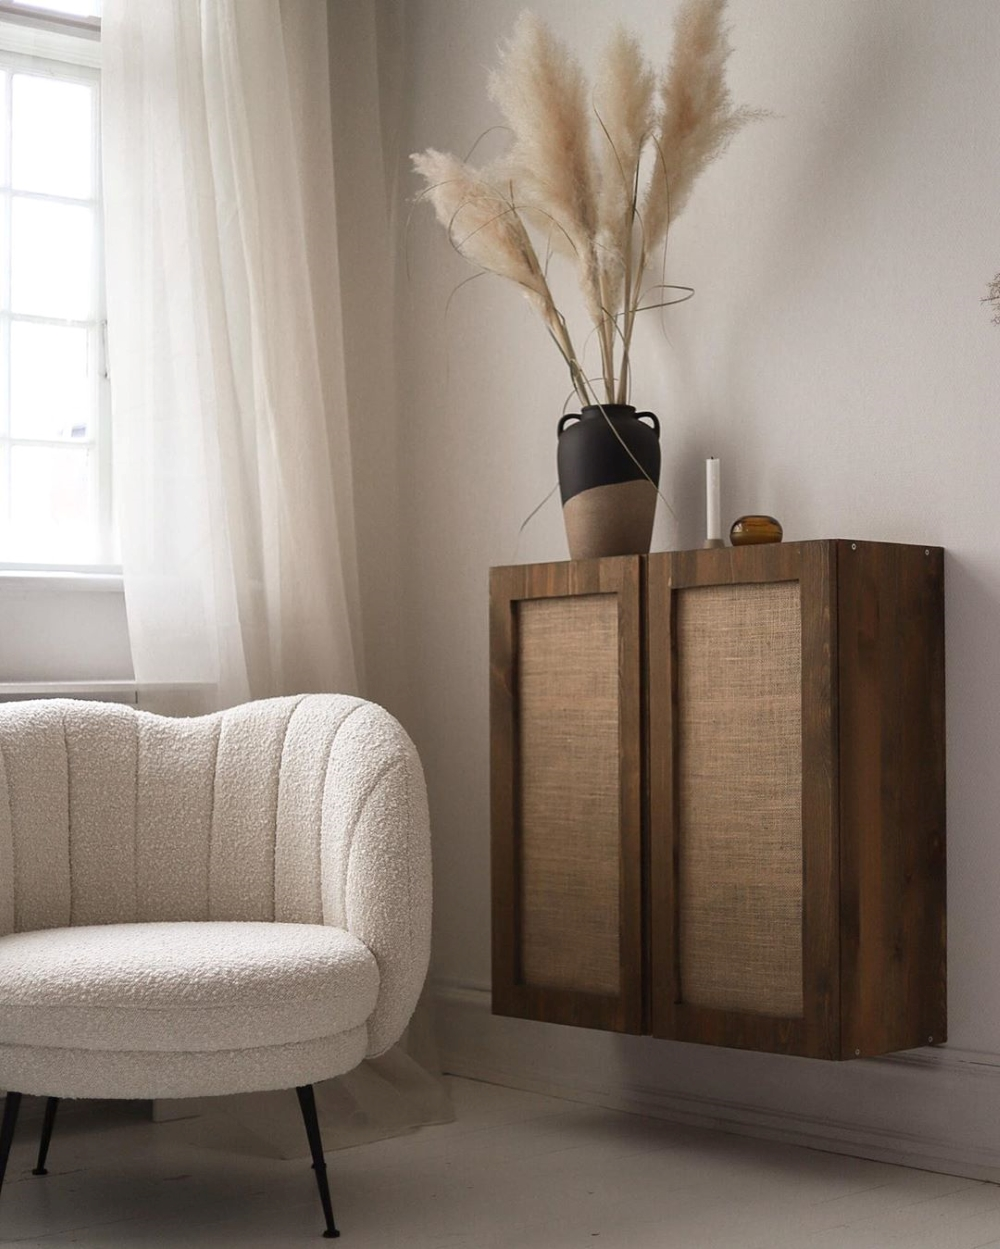 Rustic stained ikea ivar cabinet hack attached to the wall. Neutral toned armchair is situated next to the cabinet